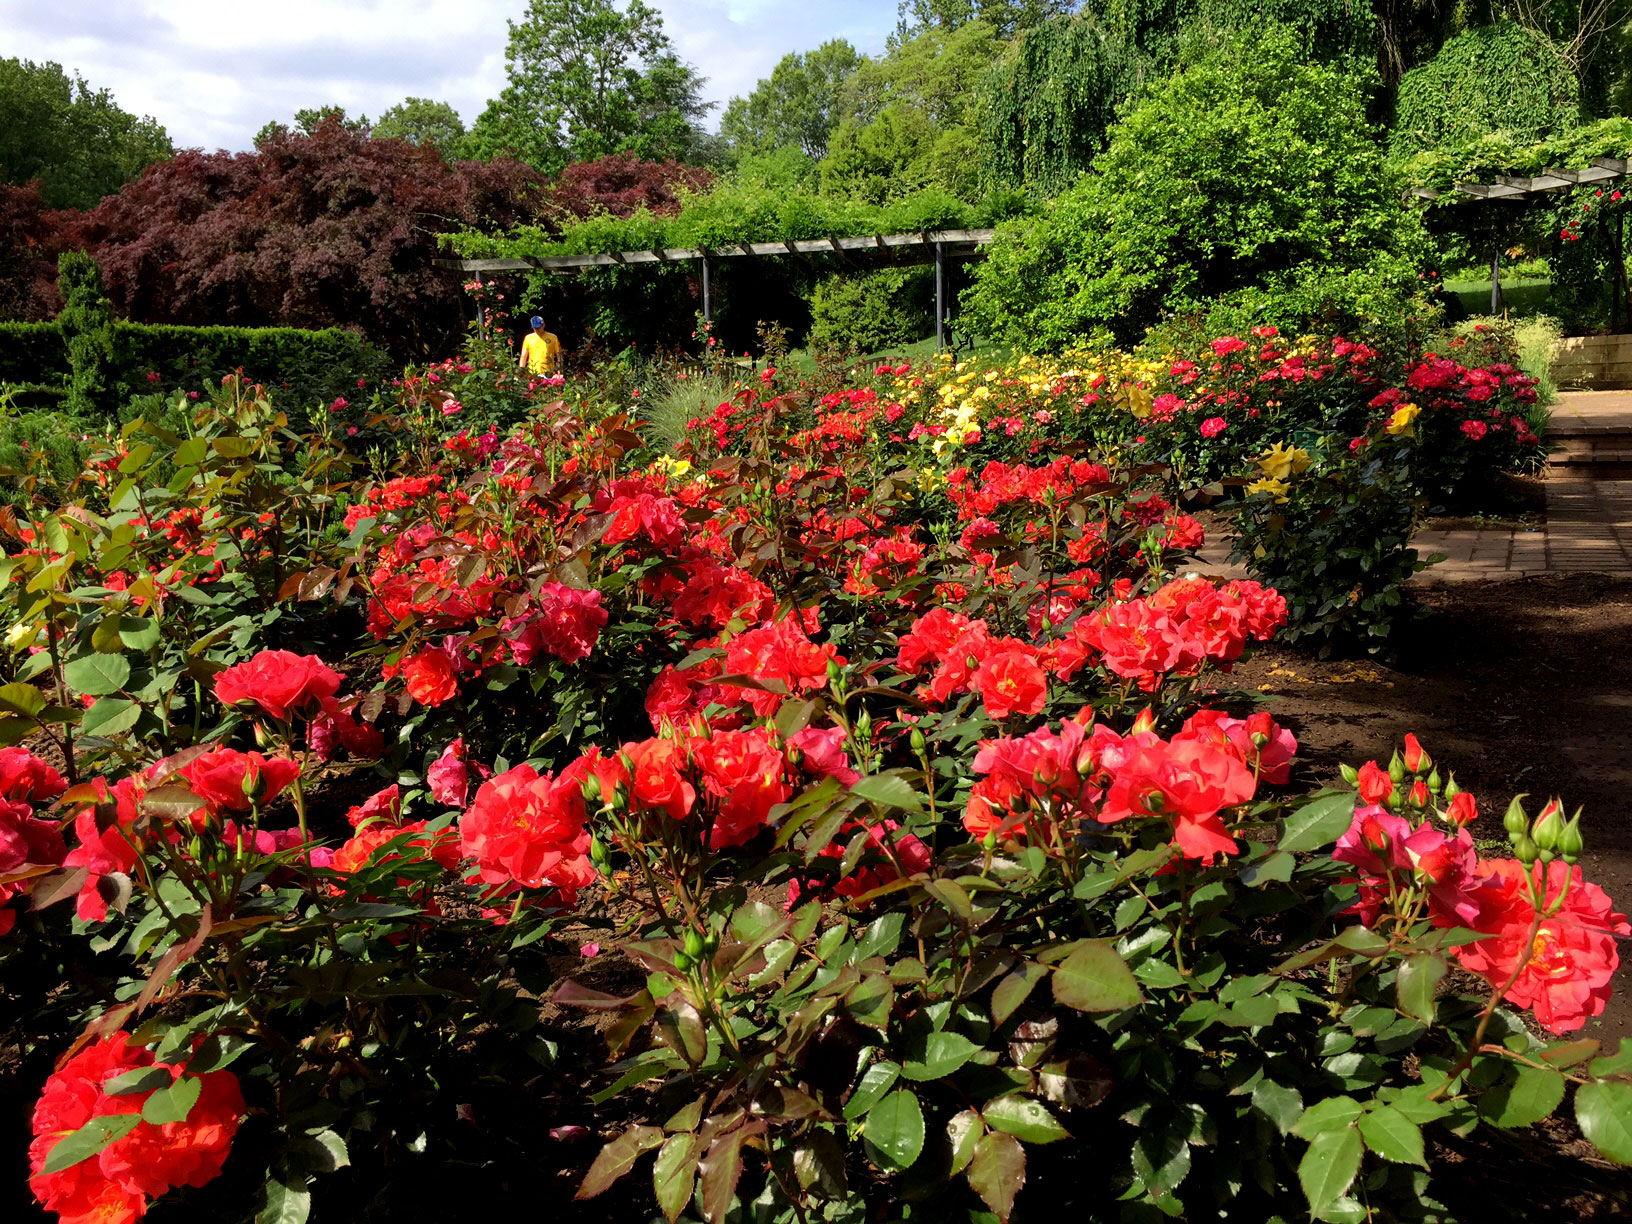 Photos: Stopping to smell the roses at Brookside Gardens